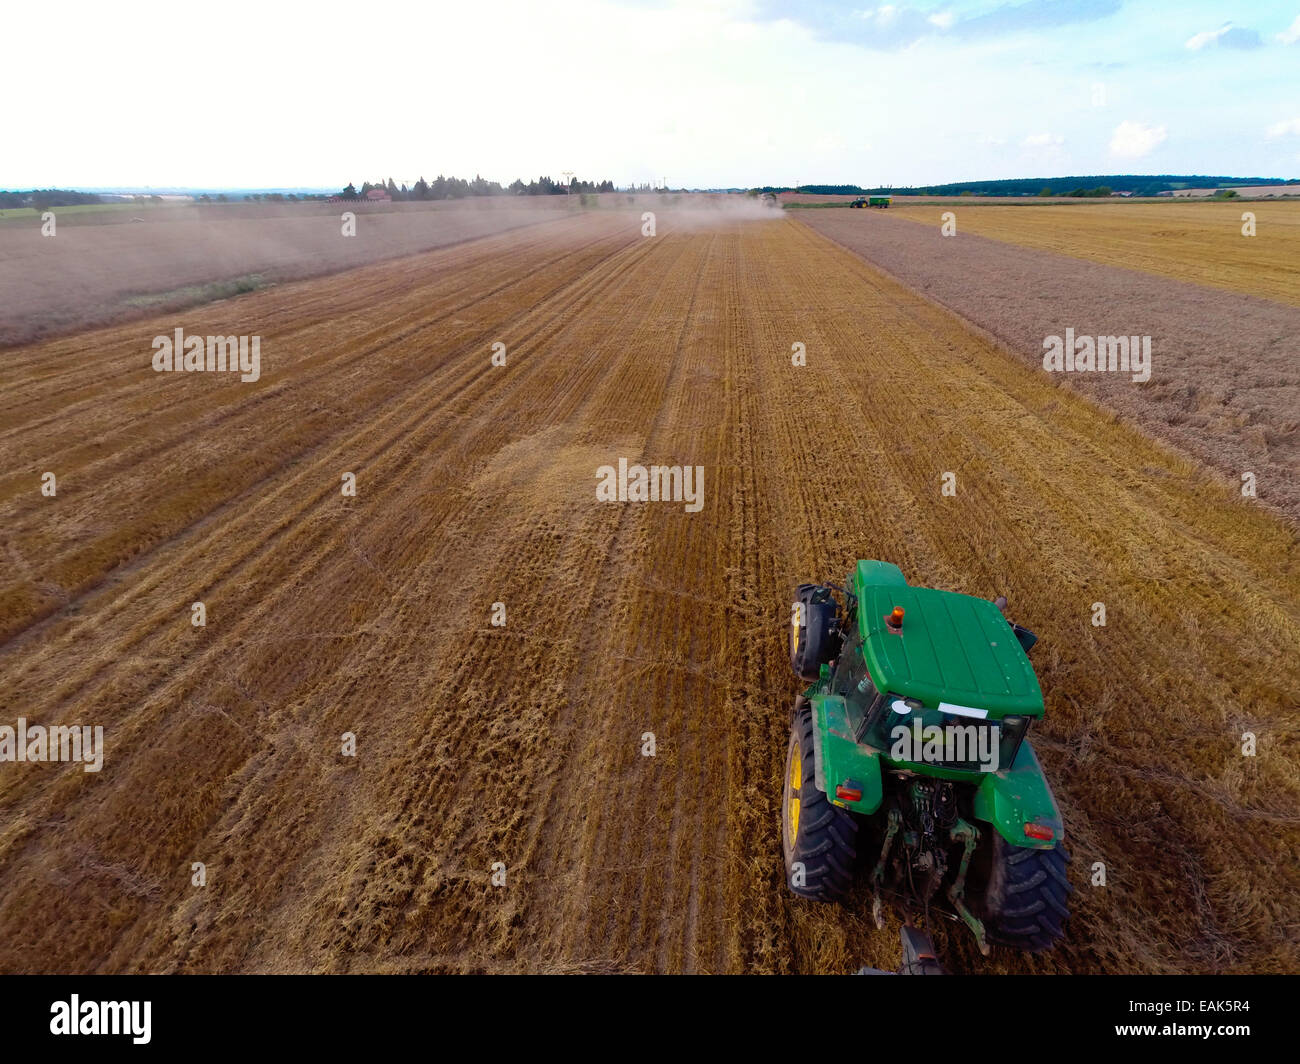 Bird-eye view of tractor on wheat field - Stock Image